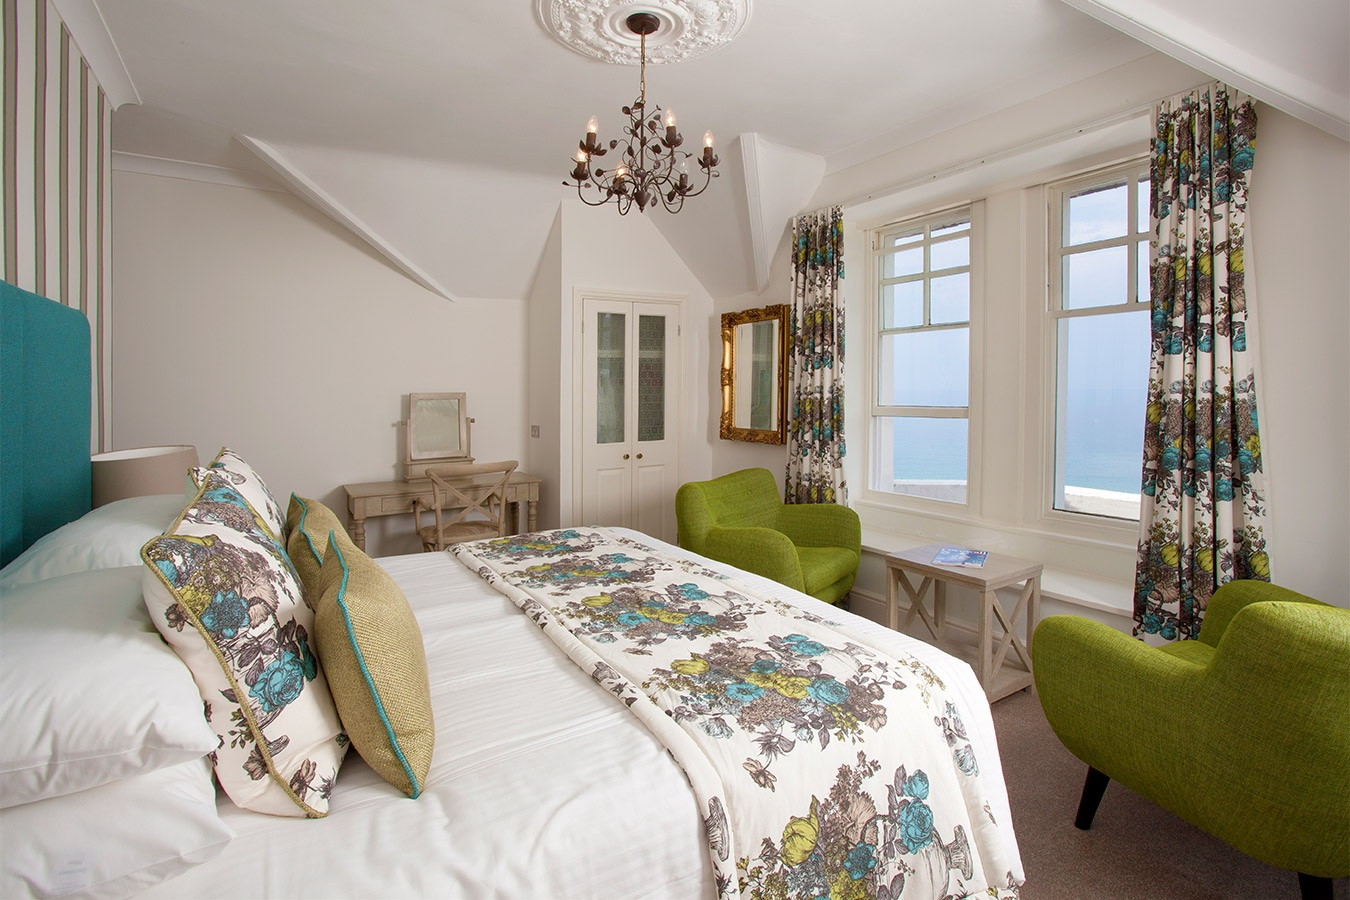 Double bedroom with low ceilings and floral bedpsread.